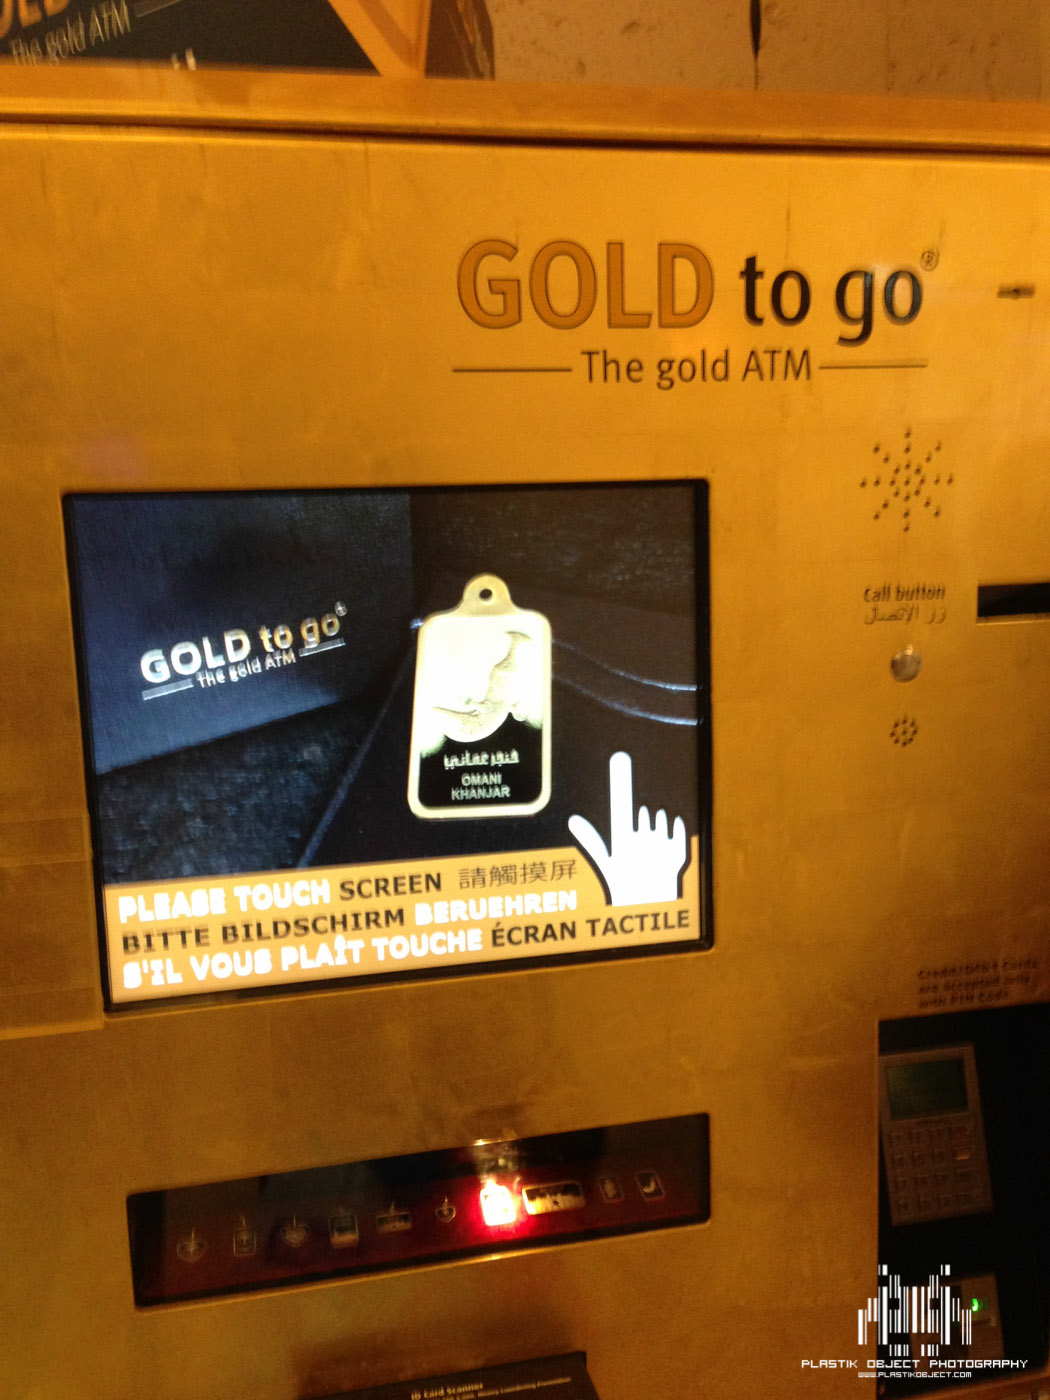 Or how about an ATM where you could withdraw gold?